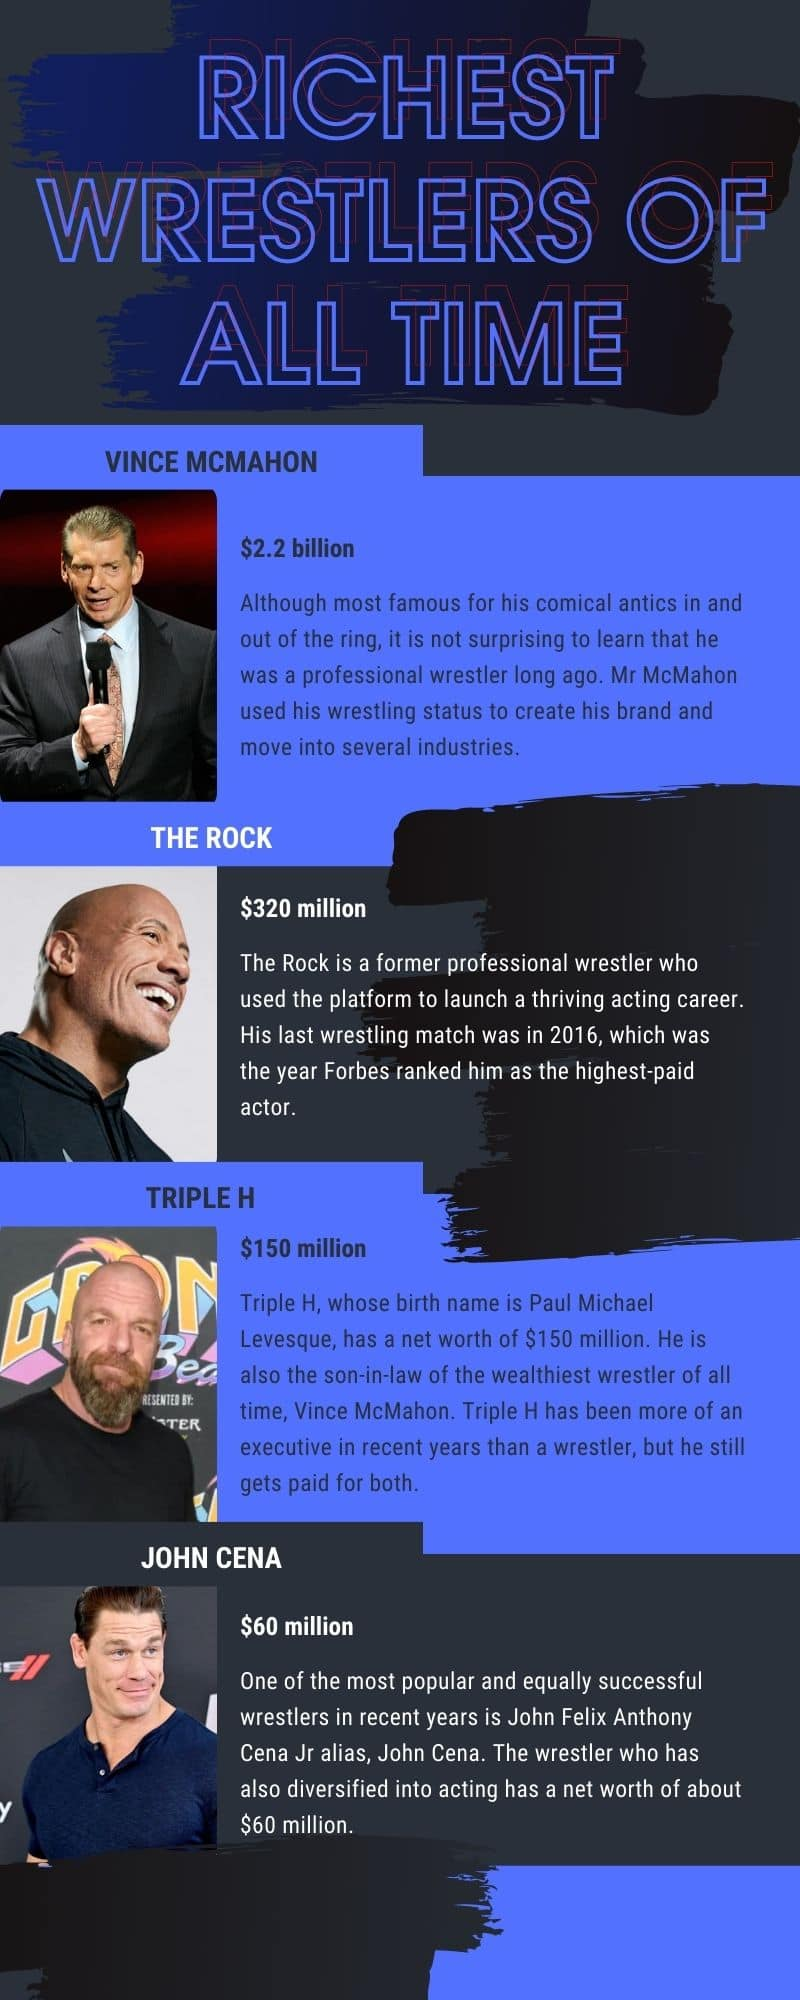 richest wrestlers of all time